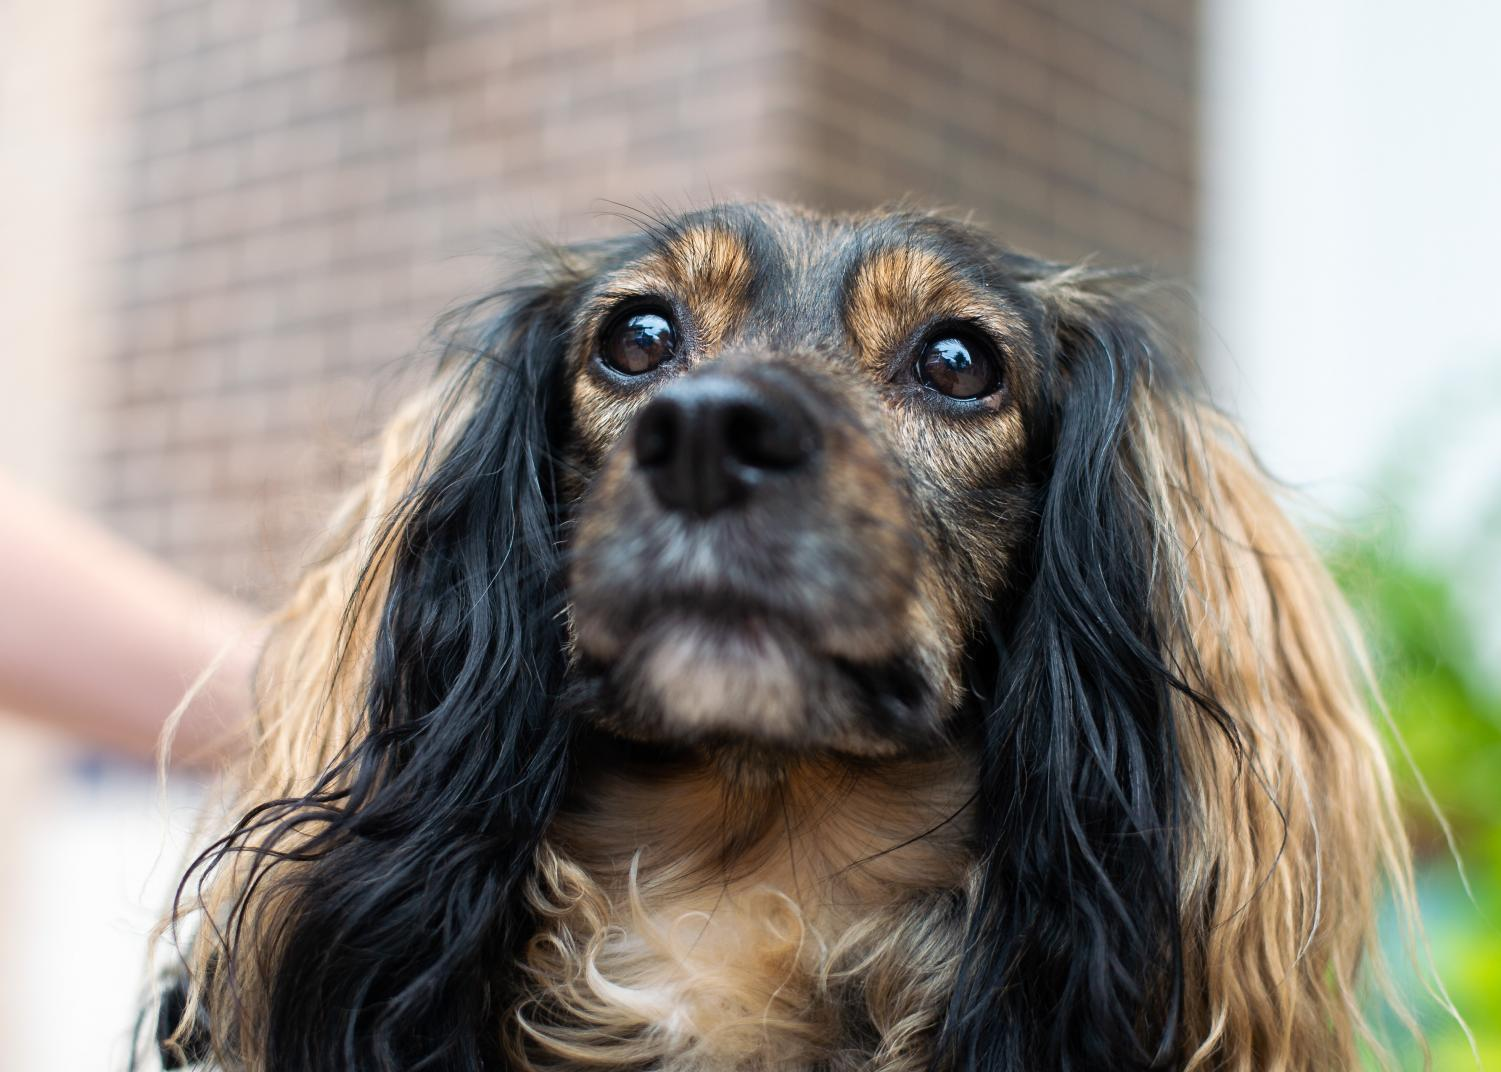 Five-year-old+dachshund%2Fspaniel+Freddy+poses.+%22He+has+his+own+Instagram%2C+I+was+posting+too+many+photos+of+him+on+my+account%2C%22+his+owner+said.+